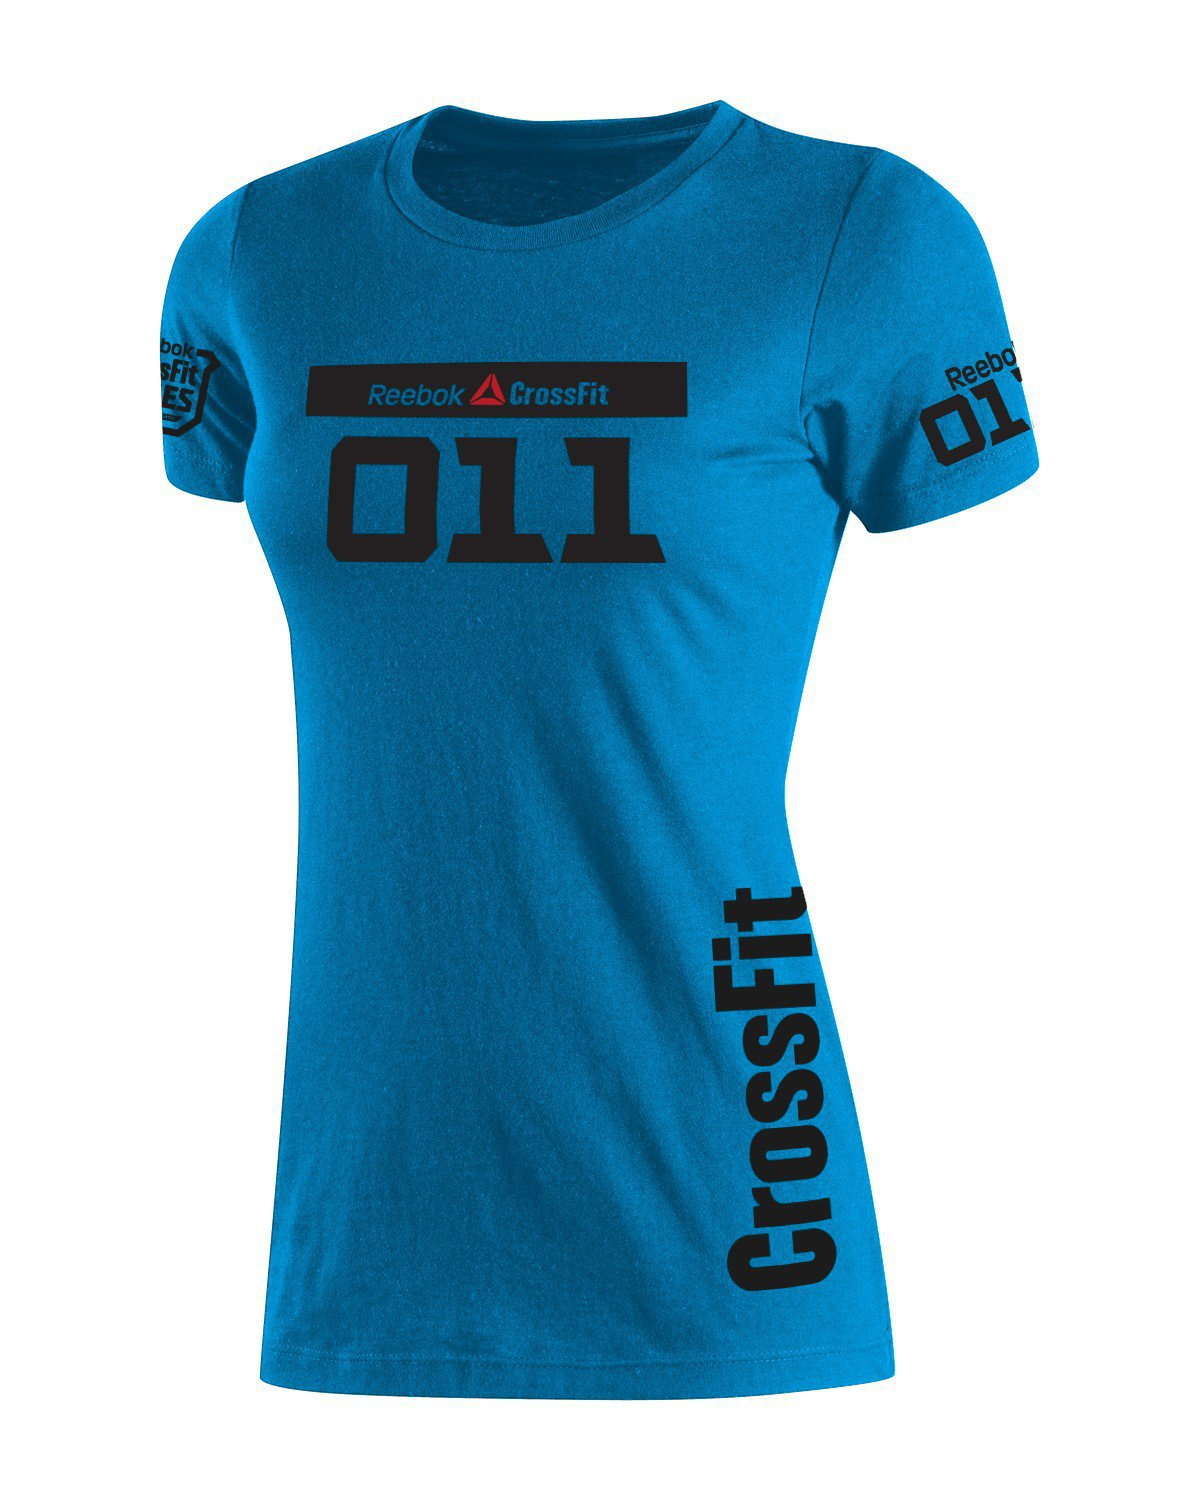 Crossfit Hq Store Her Games Replica From